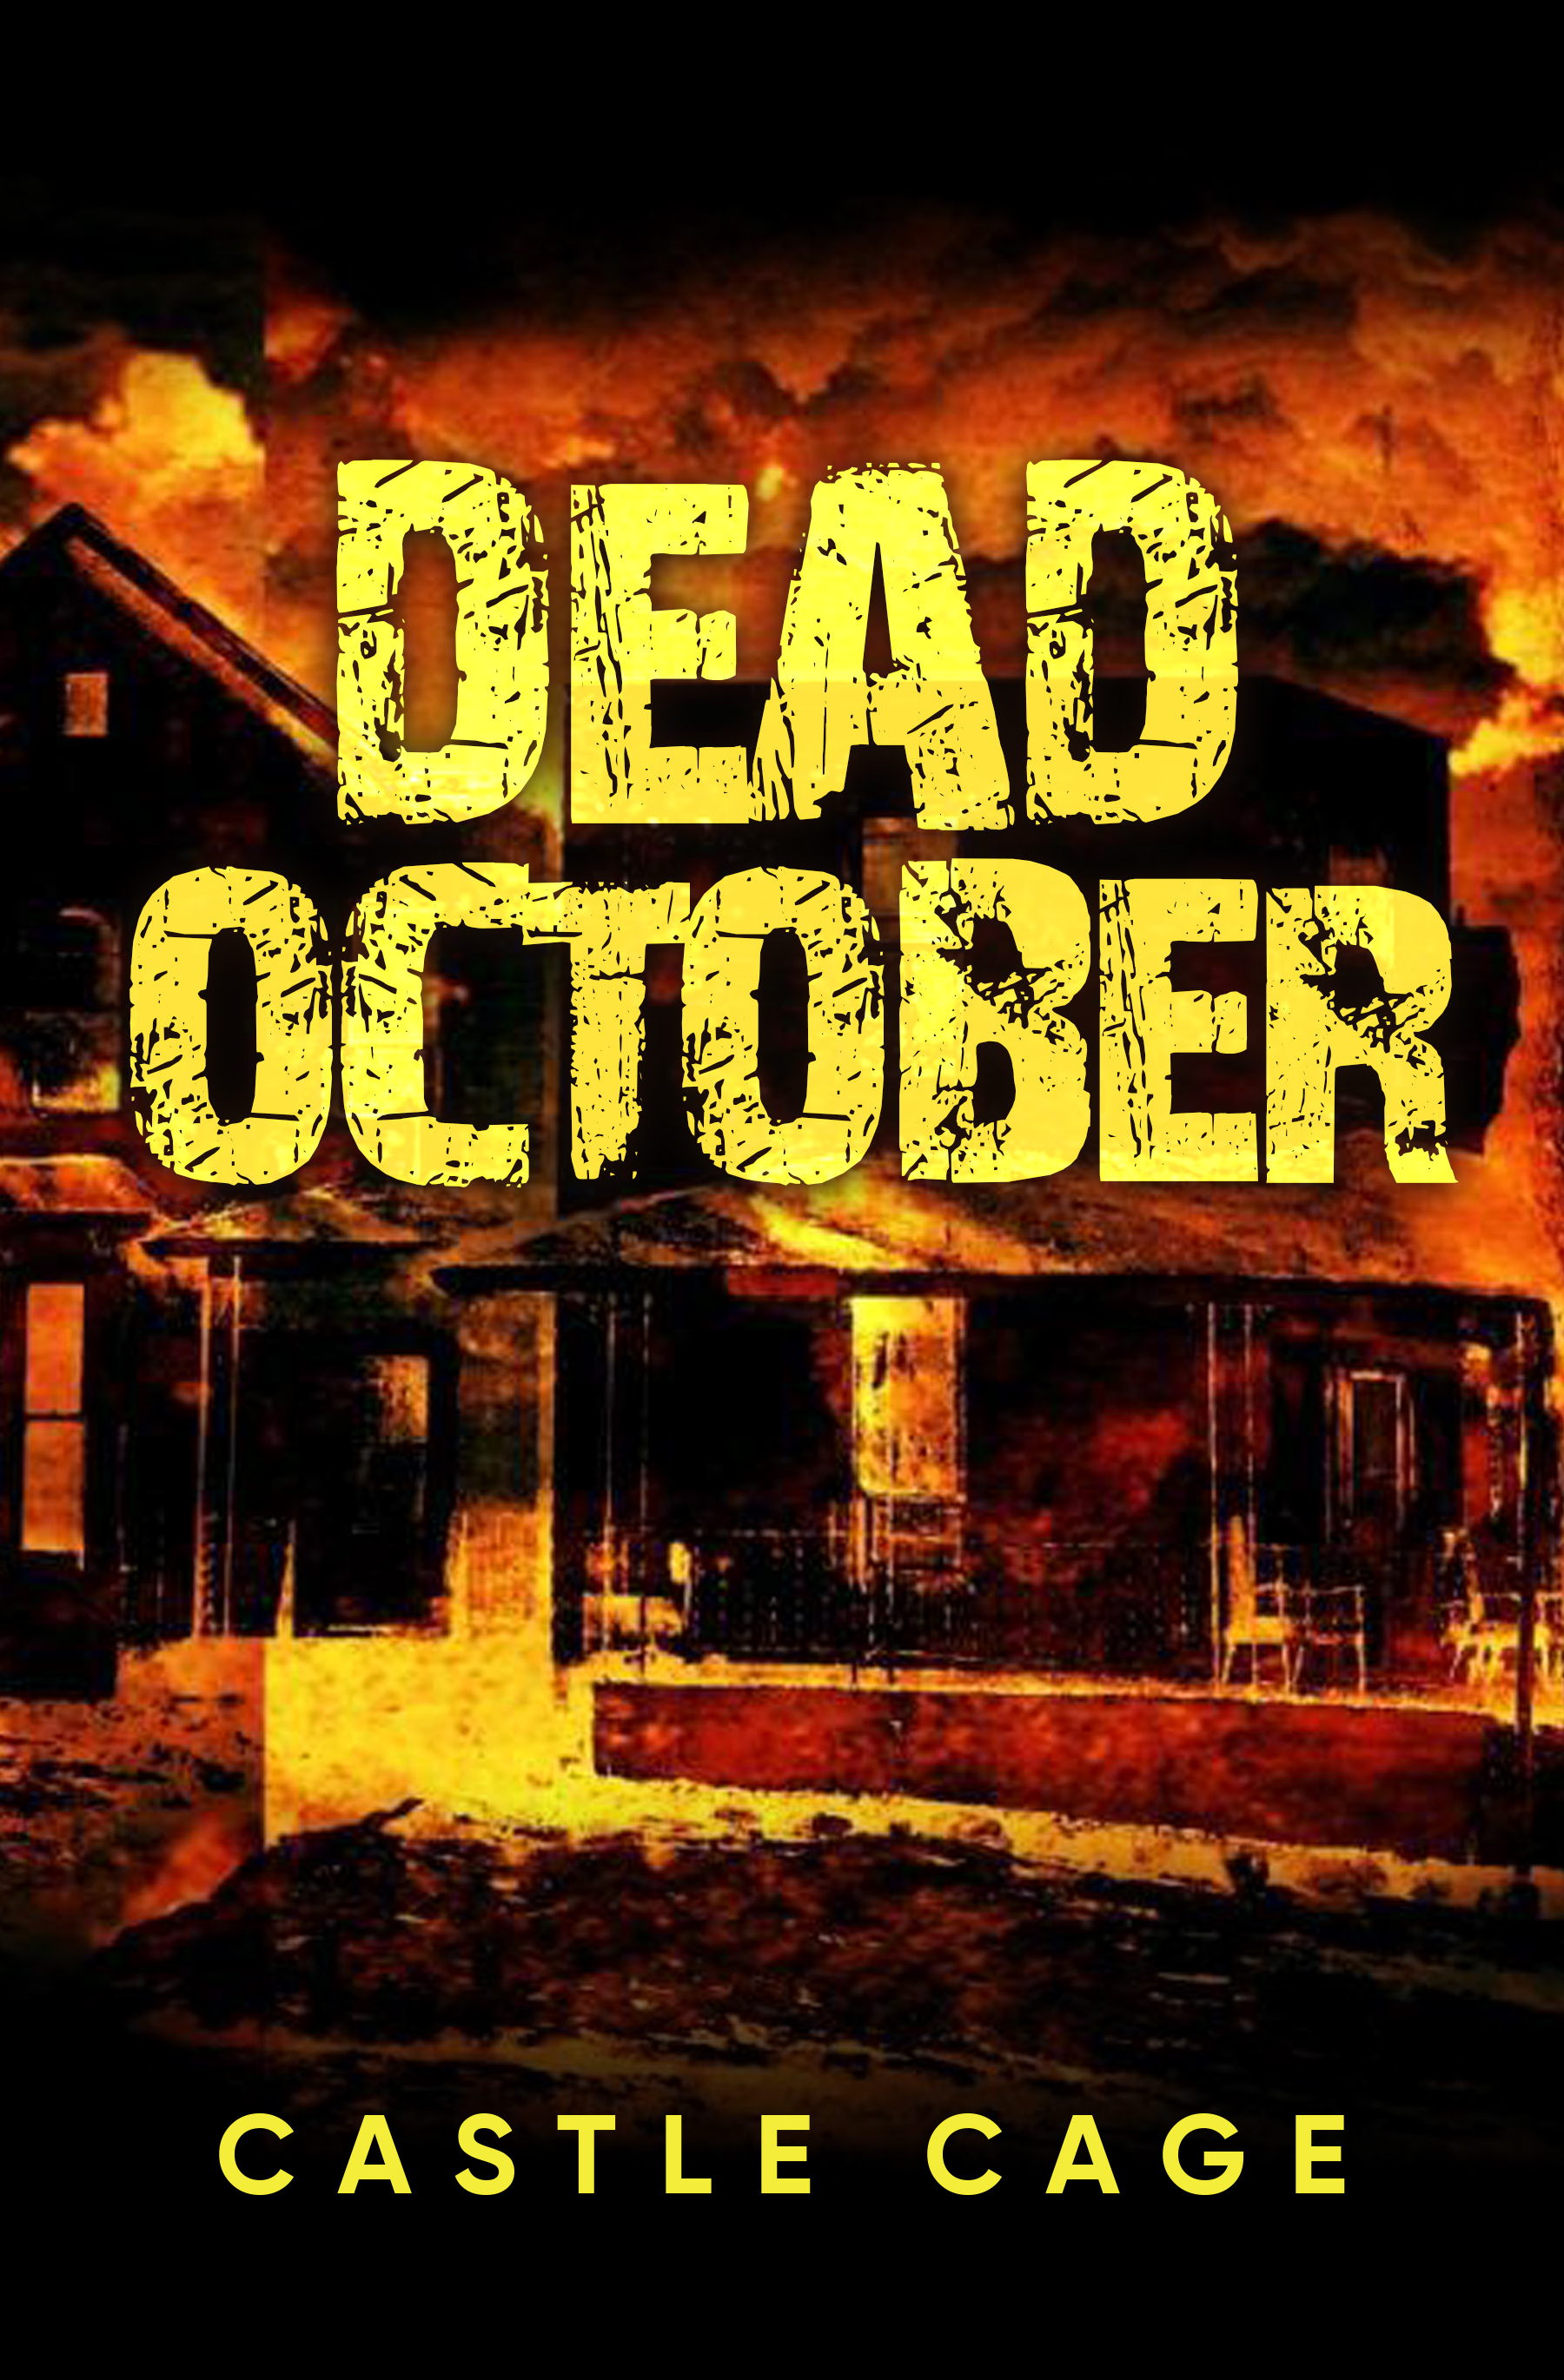 'Dead October' exposing the dark and the unknown